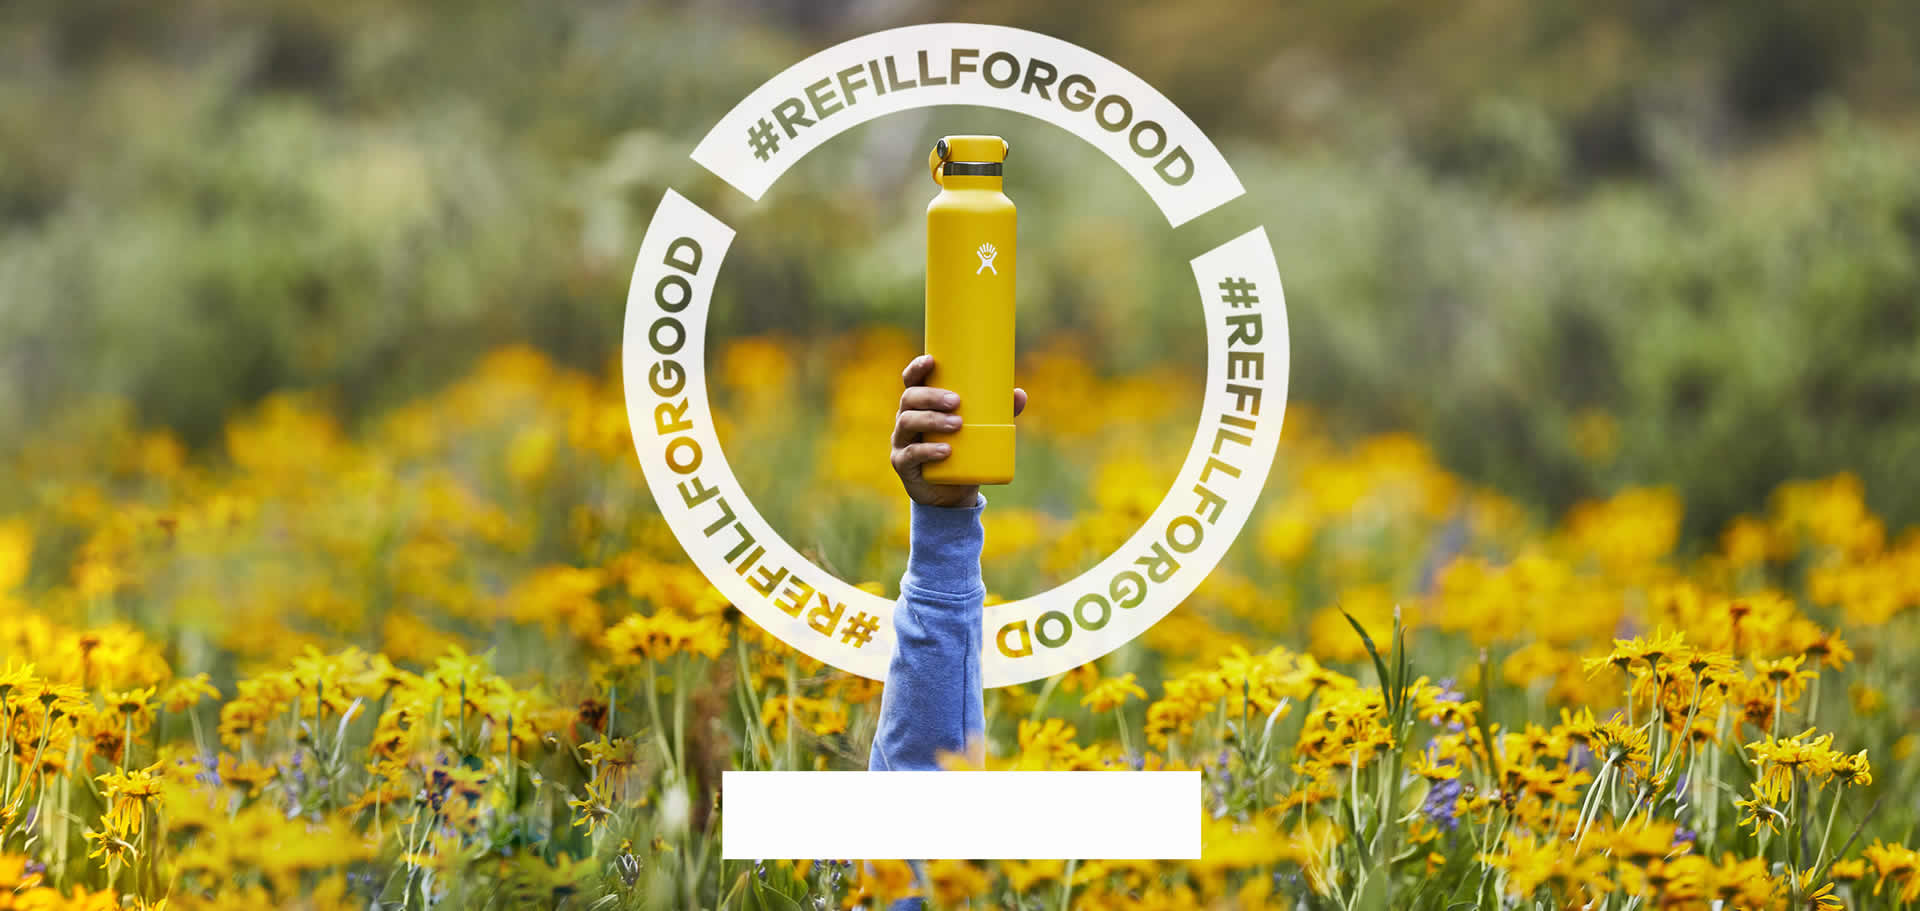 Learn about Hydro Flask's #RefillForGood initiative and make good changes for good reasons.